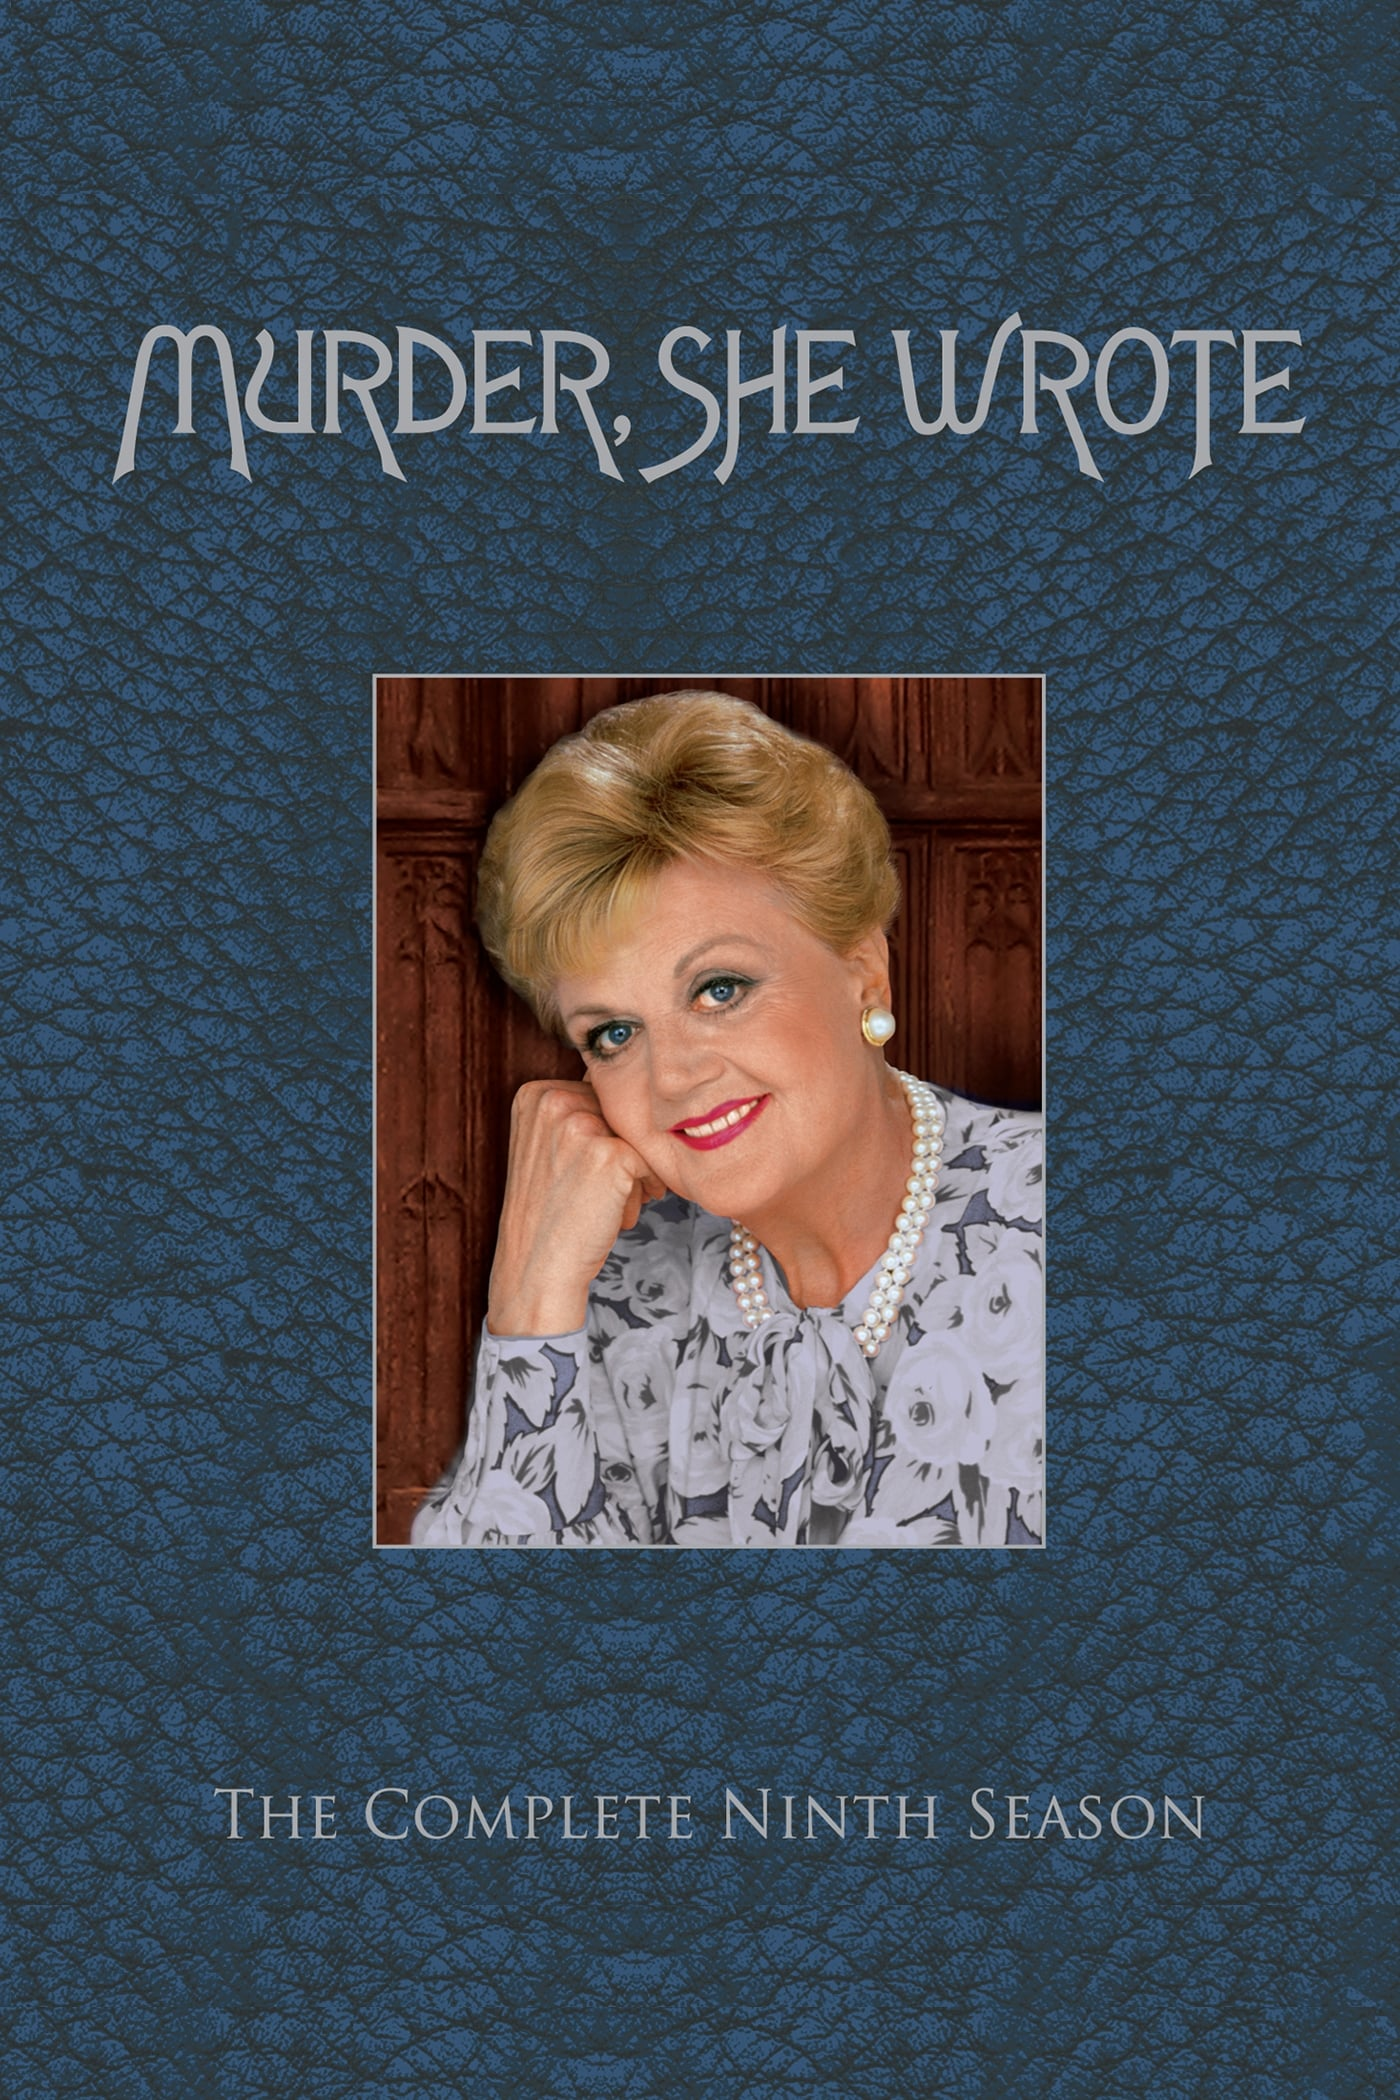 Murder, She Wrote Season 9